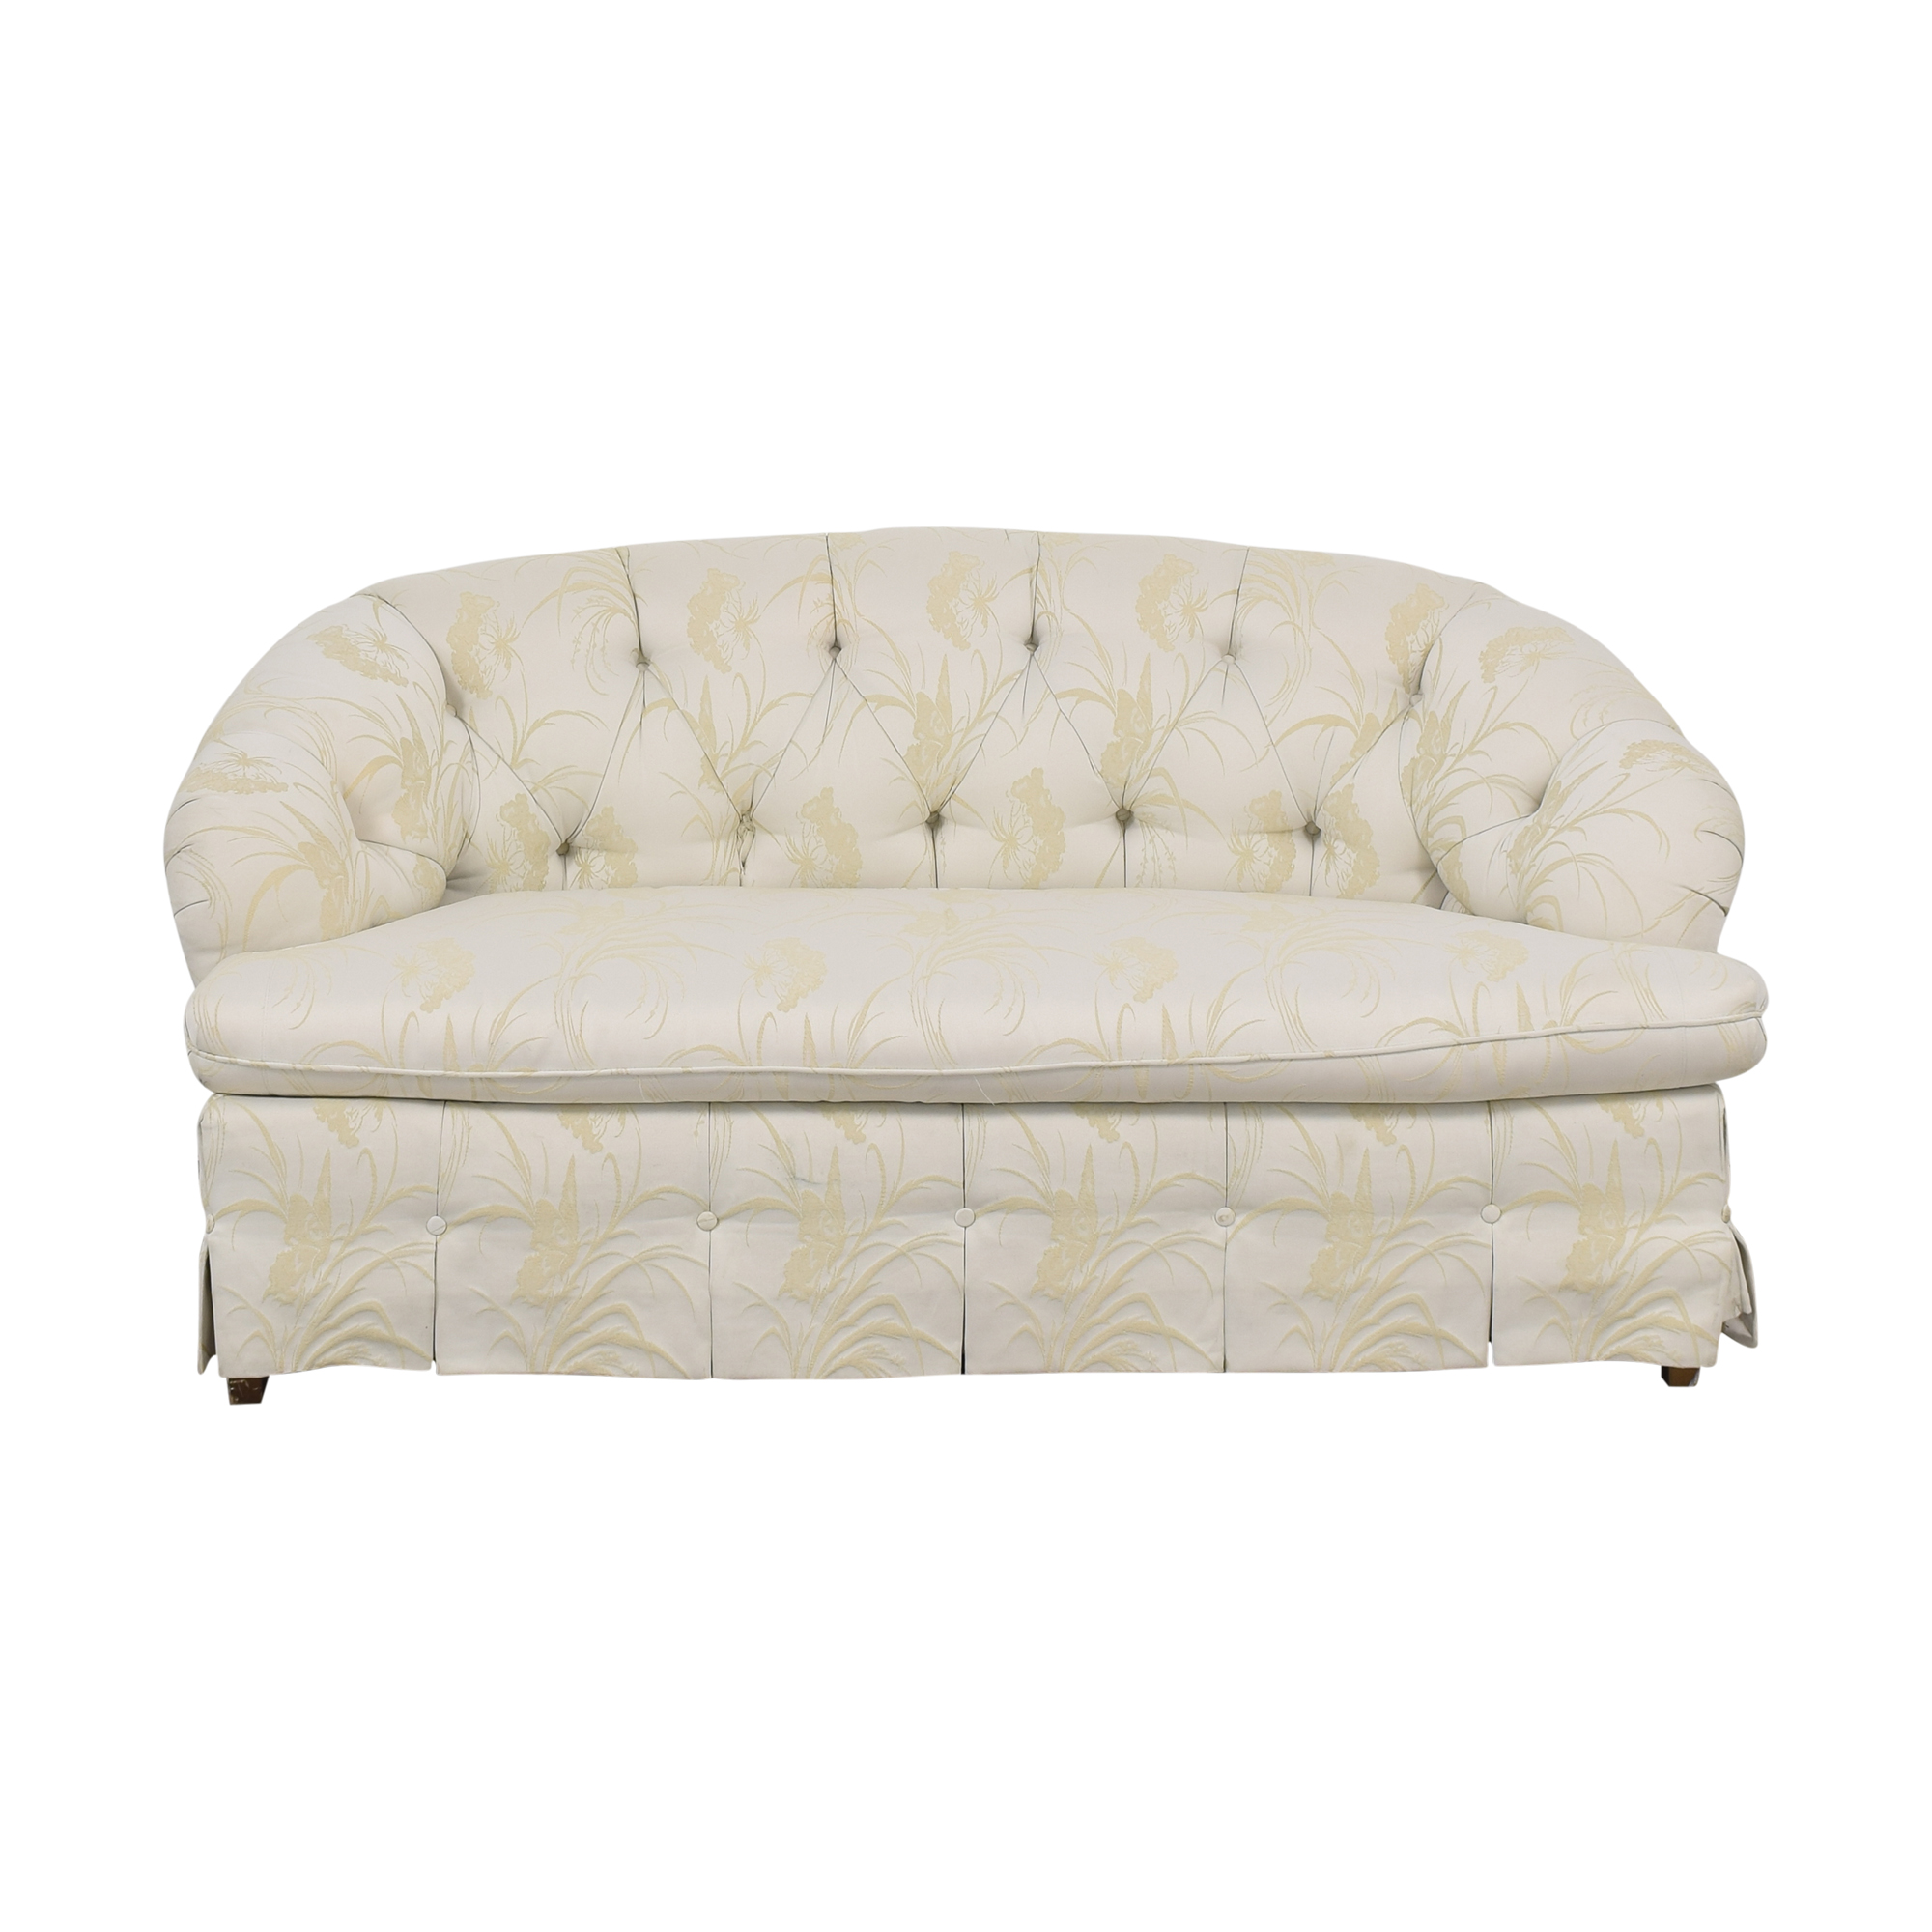 Key City Furniture Tufted Loveseat / Sofas